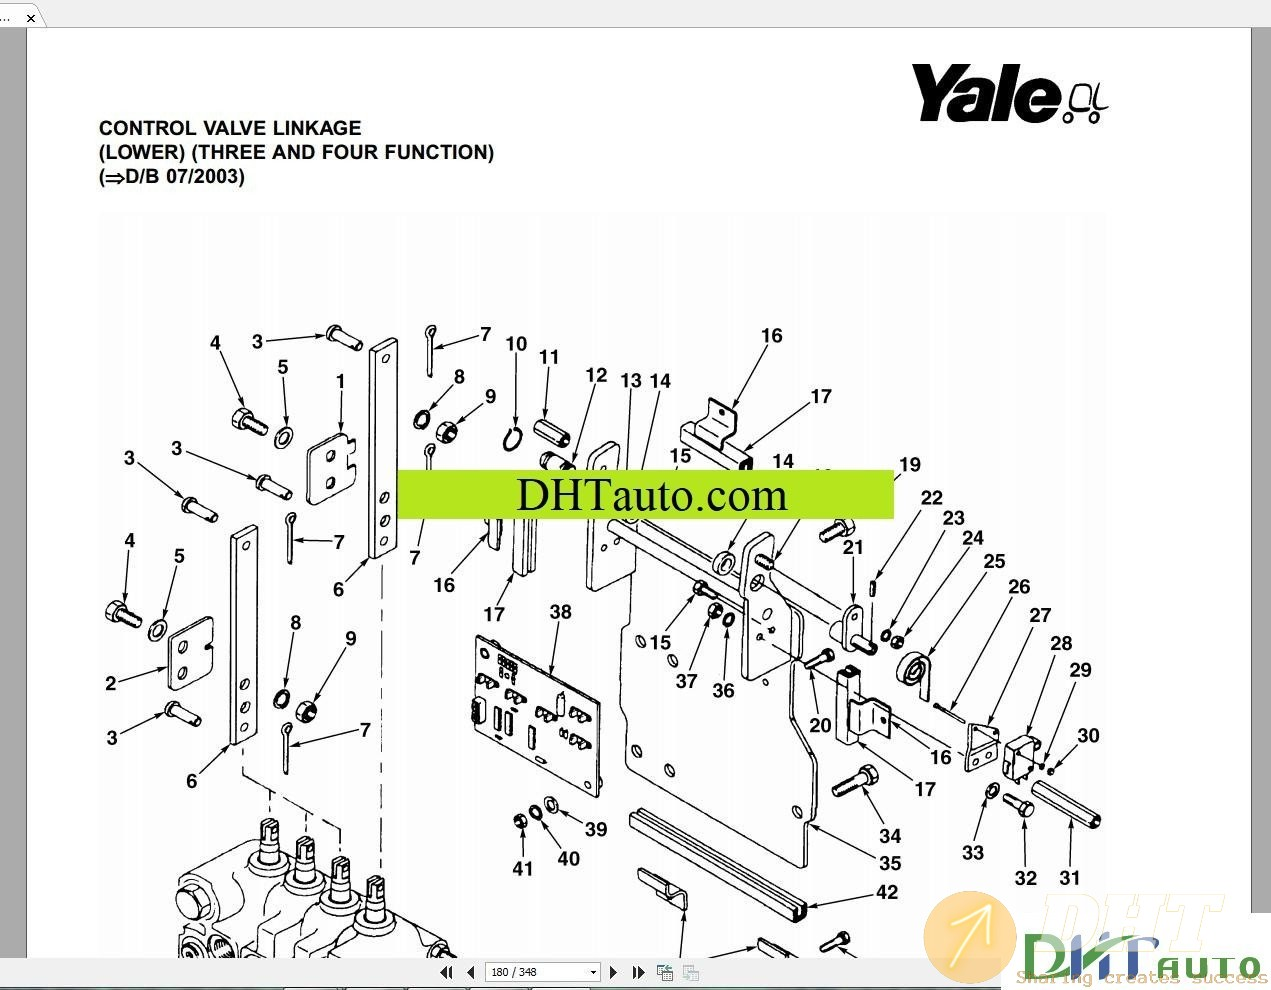 Yale-Forklift-Detailed-Of-Spare-Parts-6.jpg